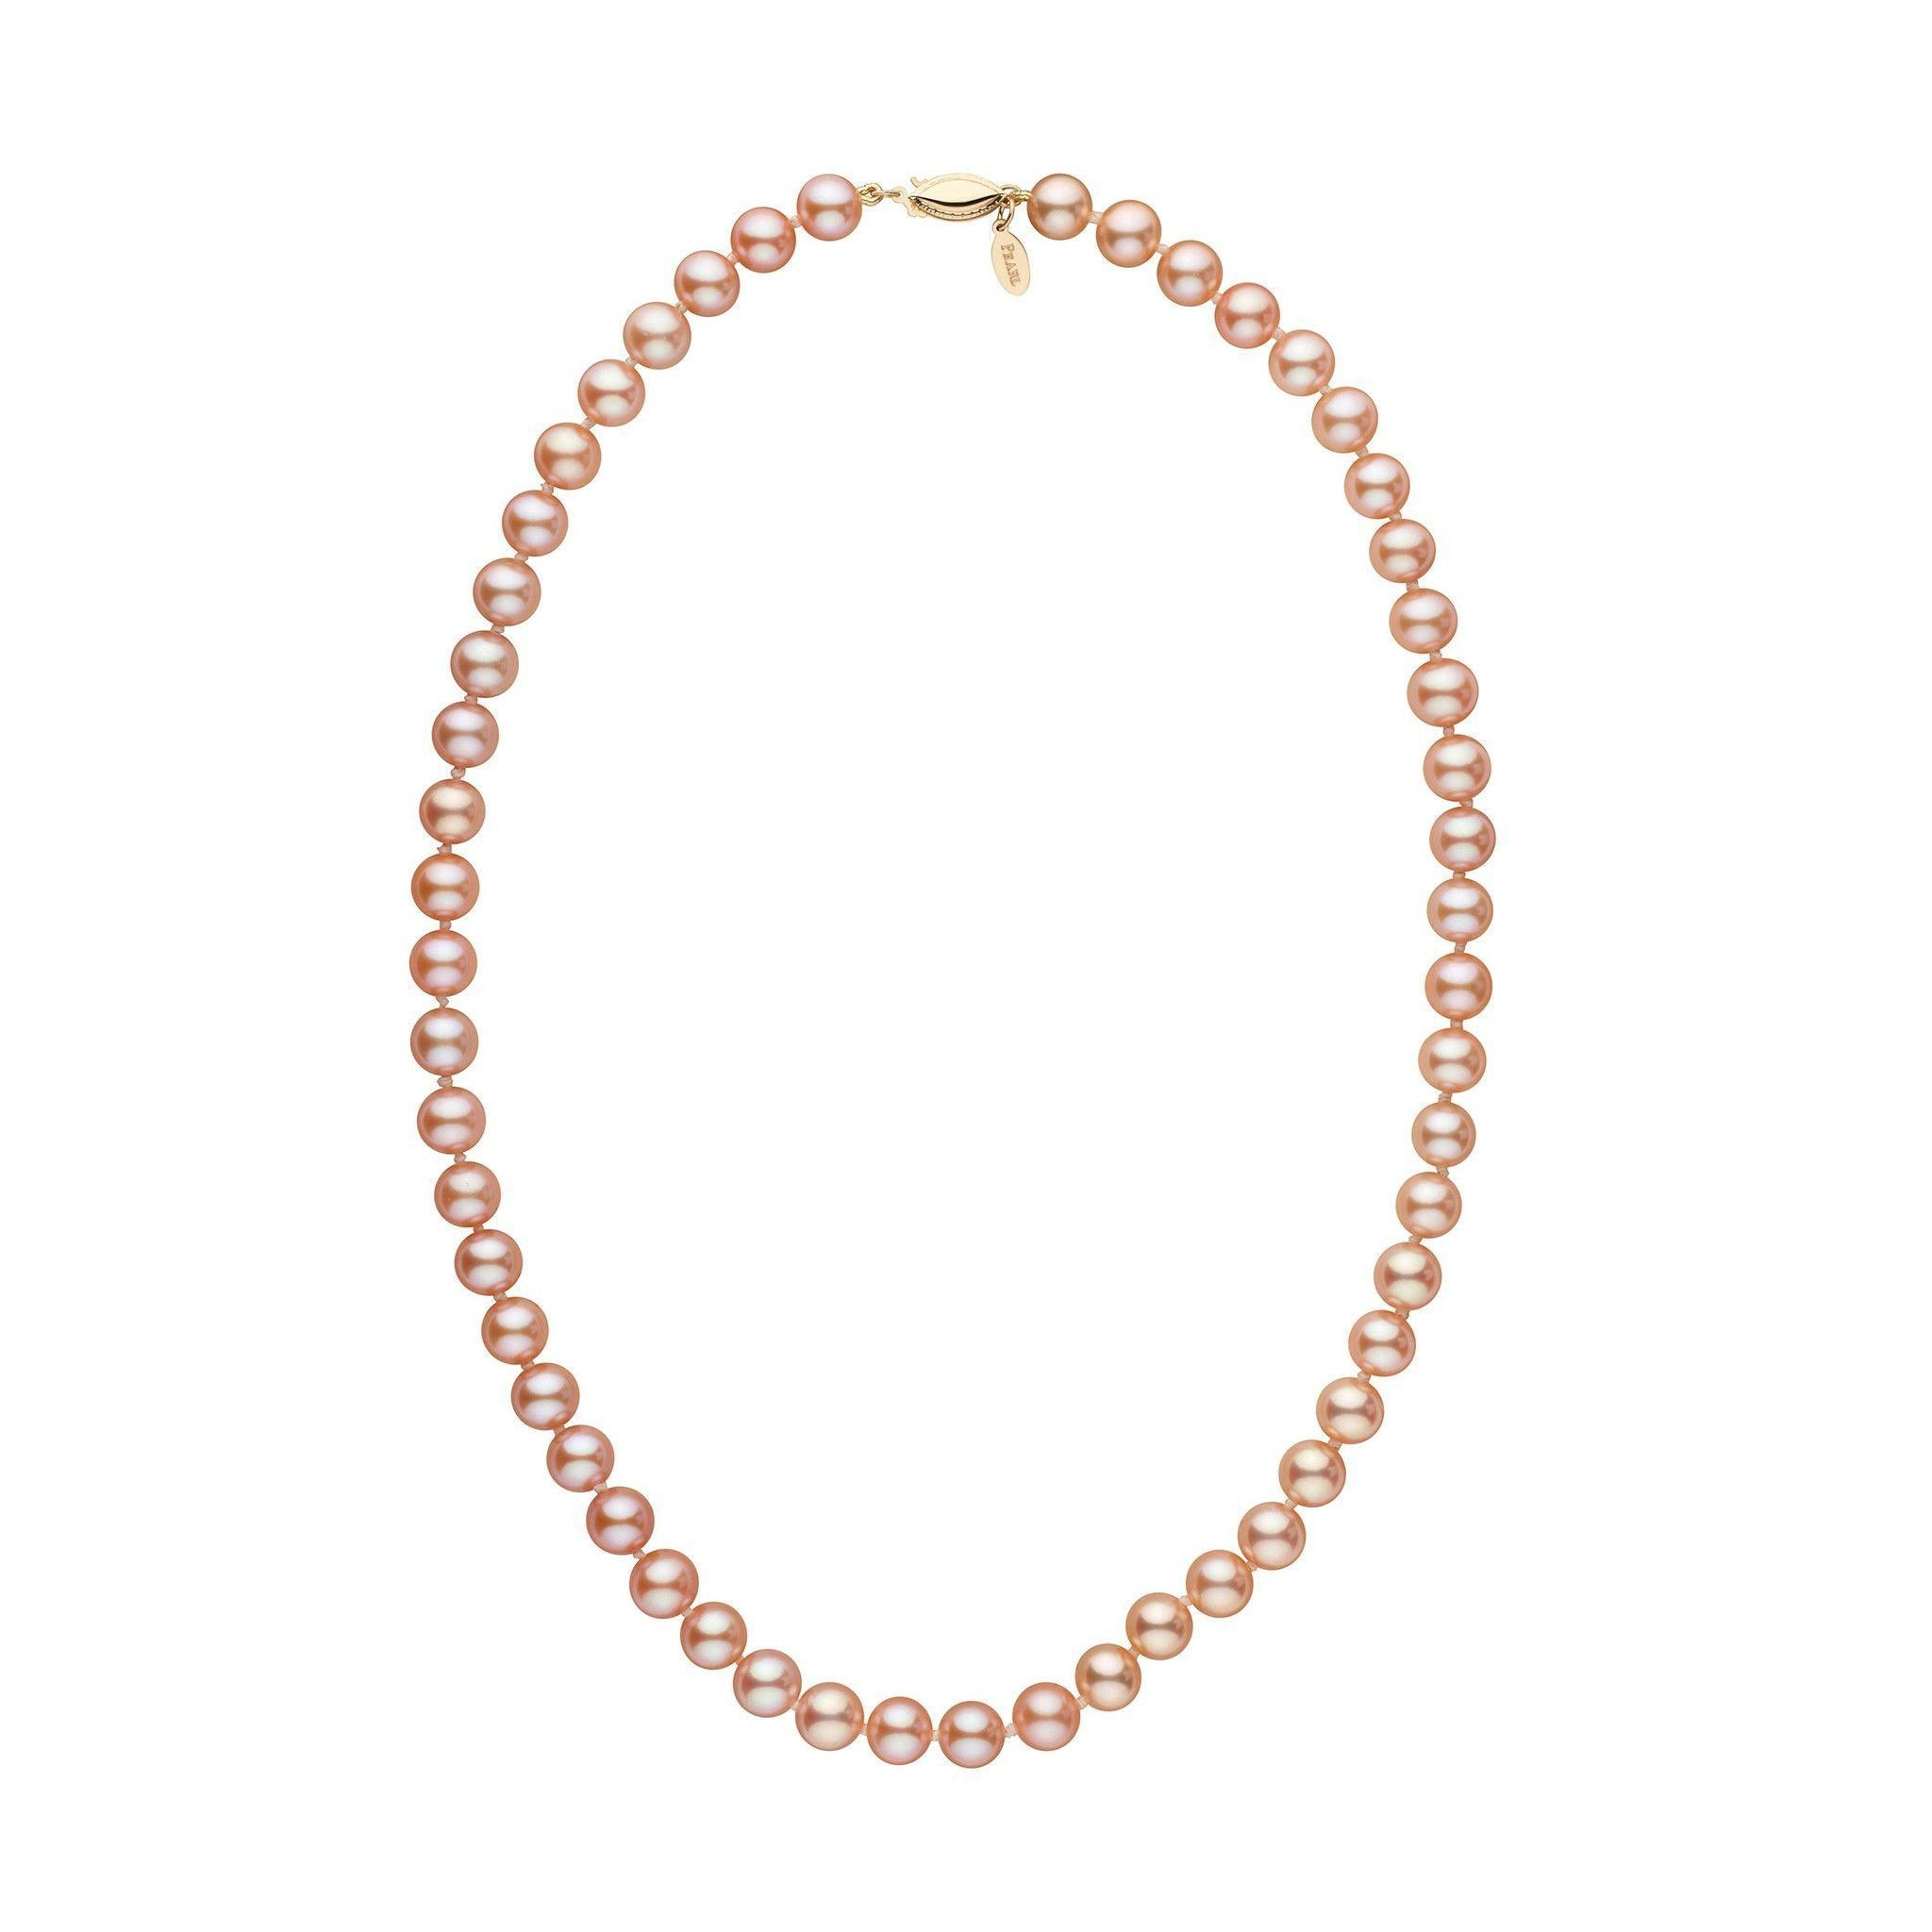 7.5-8.0 mm 18 Inch Pink to Peach Freshadama Freshwater Pearl Necklace